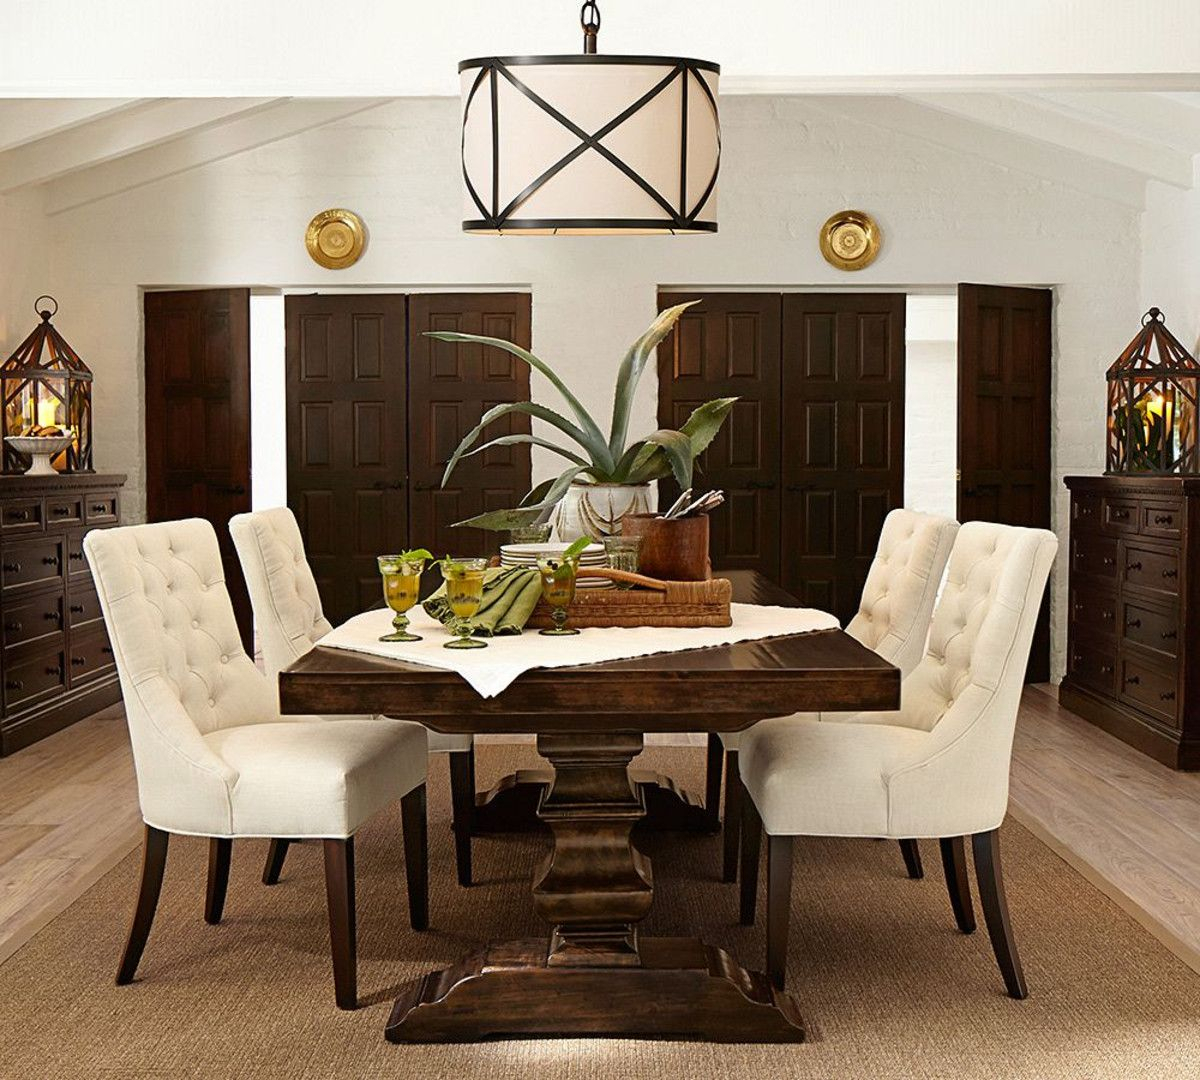 Banks Extending Dining Table – Alfresco Brown (234 – 325 Cm) Within Most Recent Black Wash Banks Extending Dining Tables (View 2 of 25)